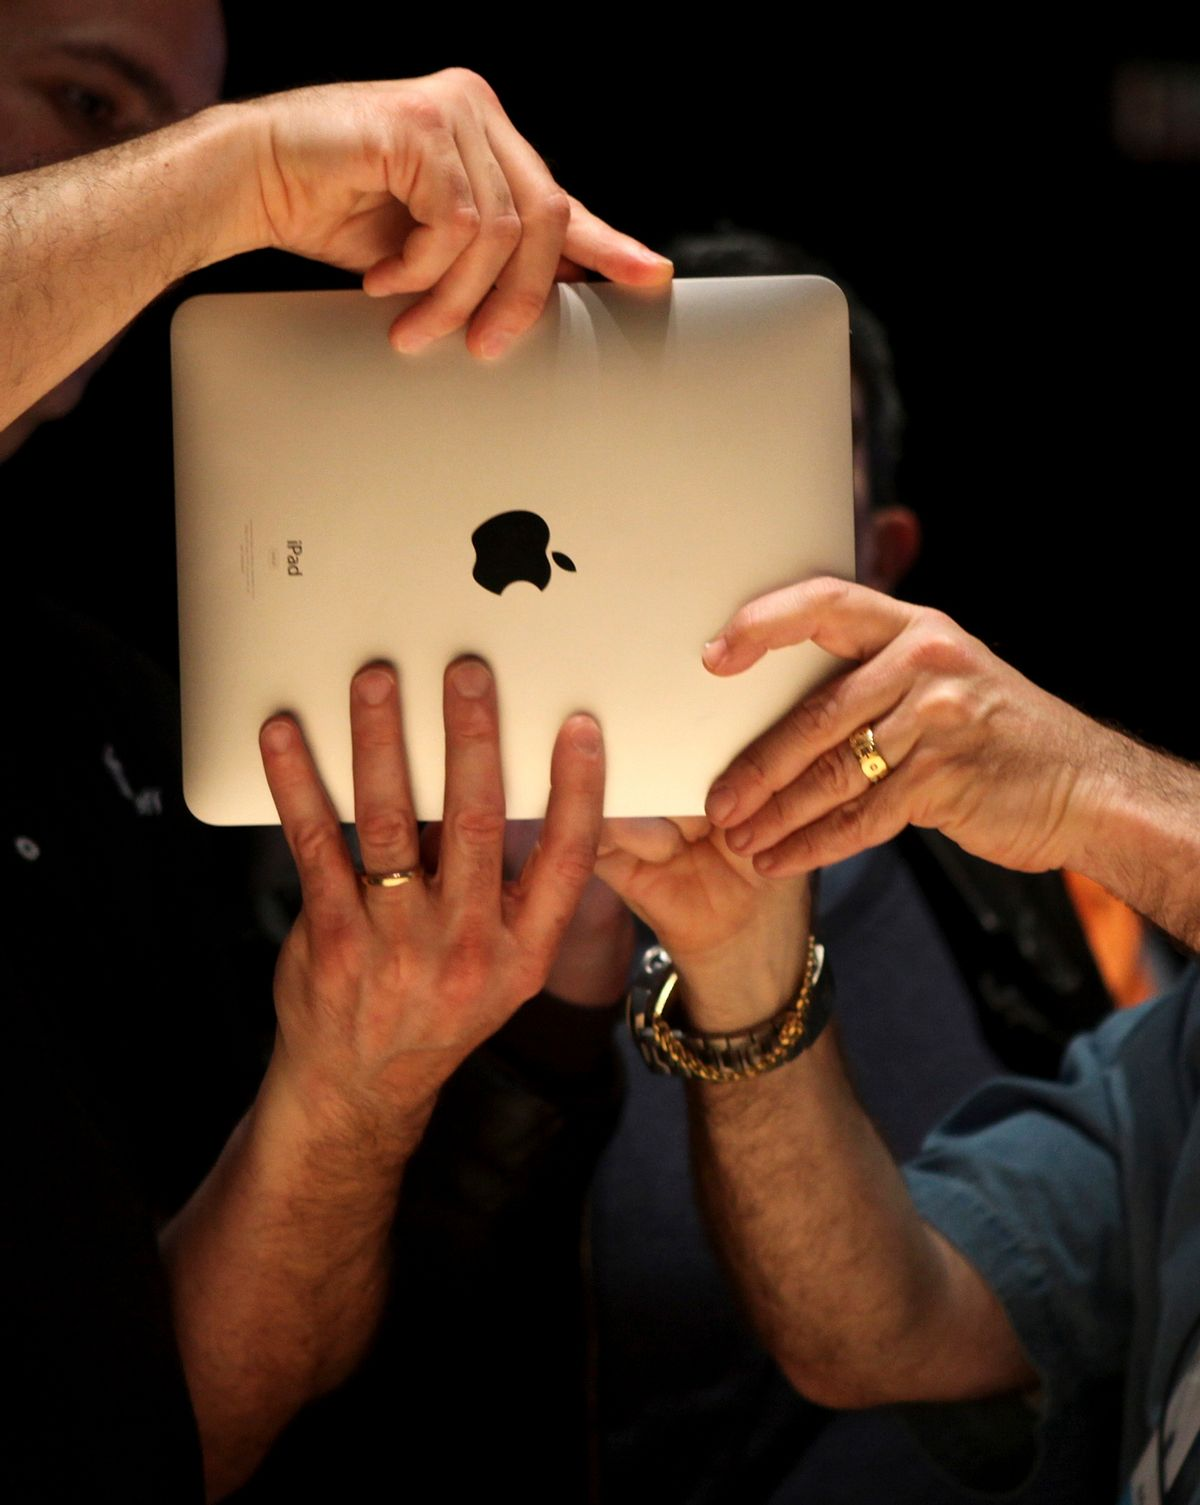 """Members of the technology media try out Apple's  """"iPad"""" , a new tablet computing device, after its launch event in San Francisco, California, January 27, 2010. REUTERS/Kimberly White (UNITED STATES - Tags: BUSINESS SCI TECH) (Reuters)"""